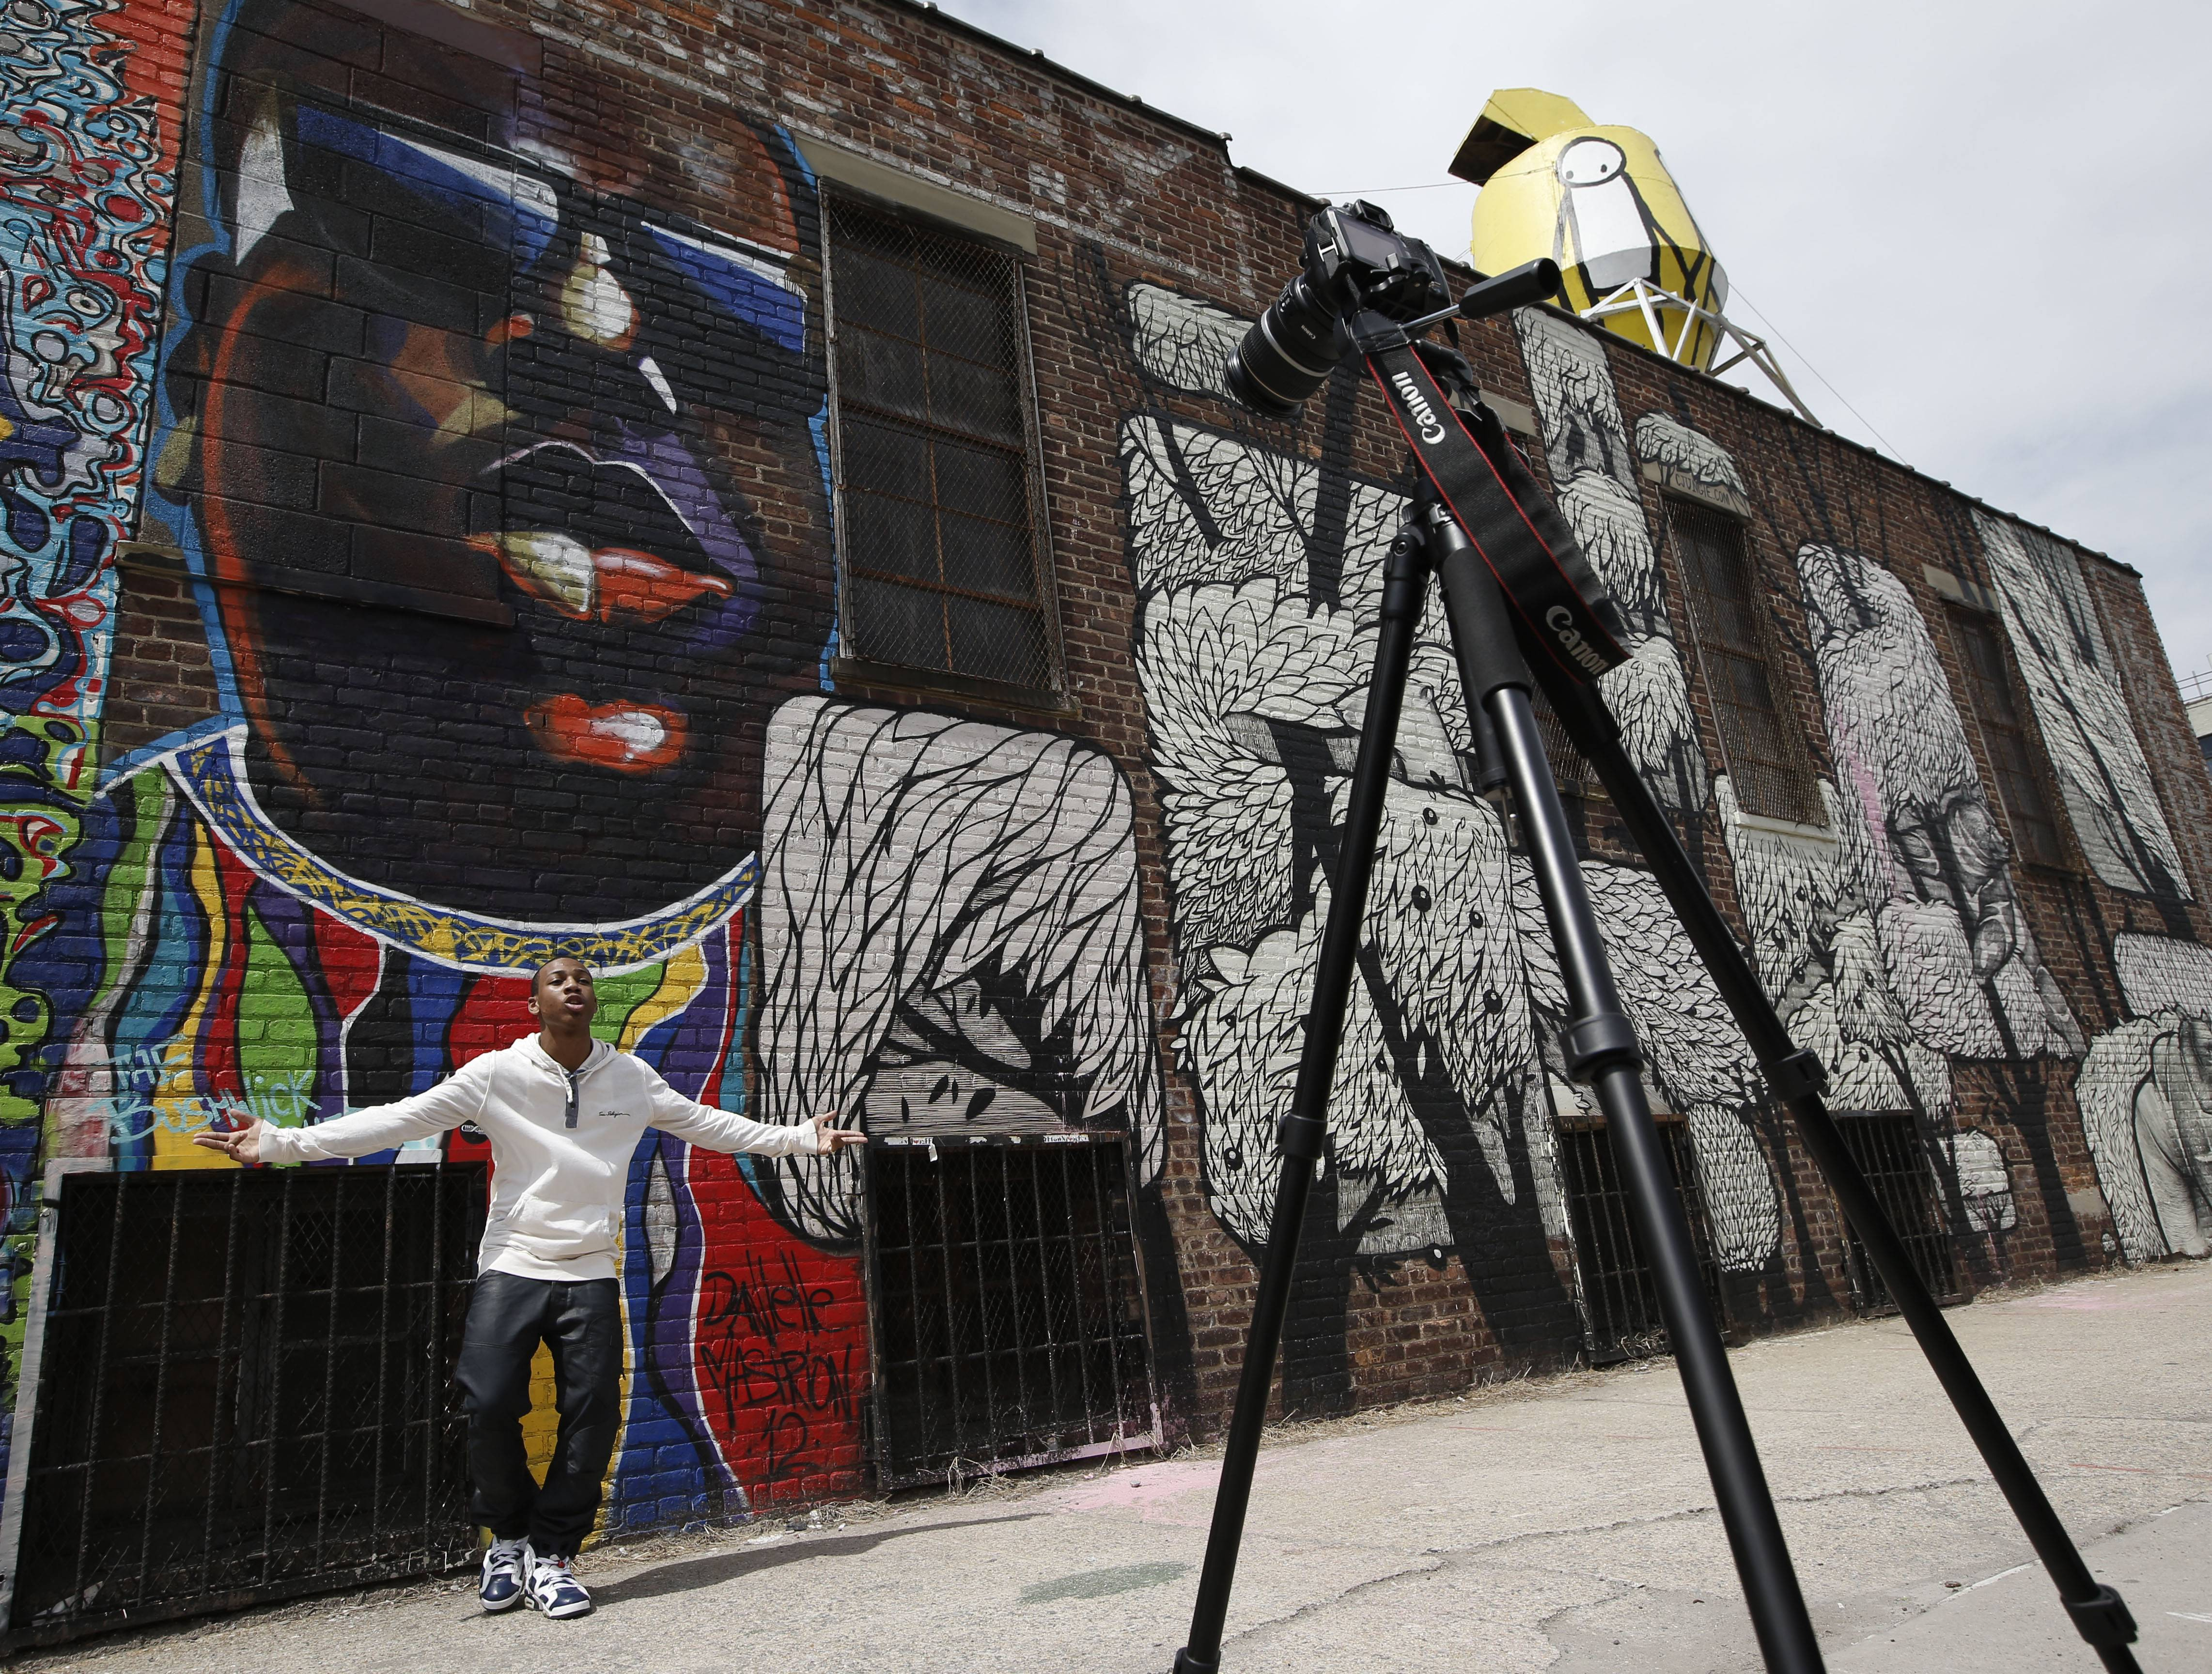 Jermaine McGriff, 20, a Bedford Stuyvesant-based rapper whose rap name is Flispy Flexin, records a music video in front of a street art portrait of the late rapper Biggie Smalls, also known as Notorious B.I.G., in Brooklyn's Bushwick neighborhood.